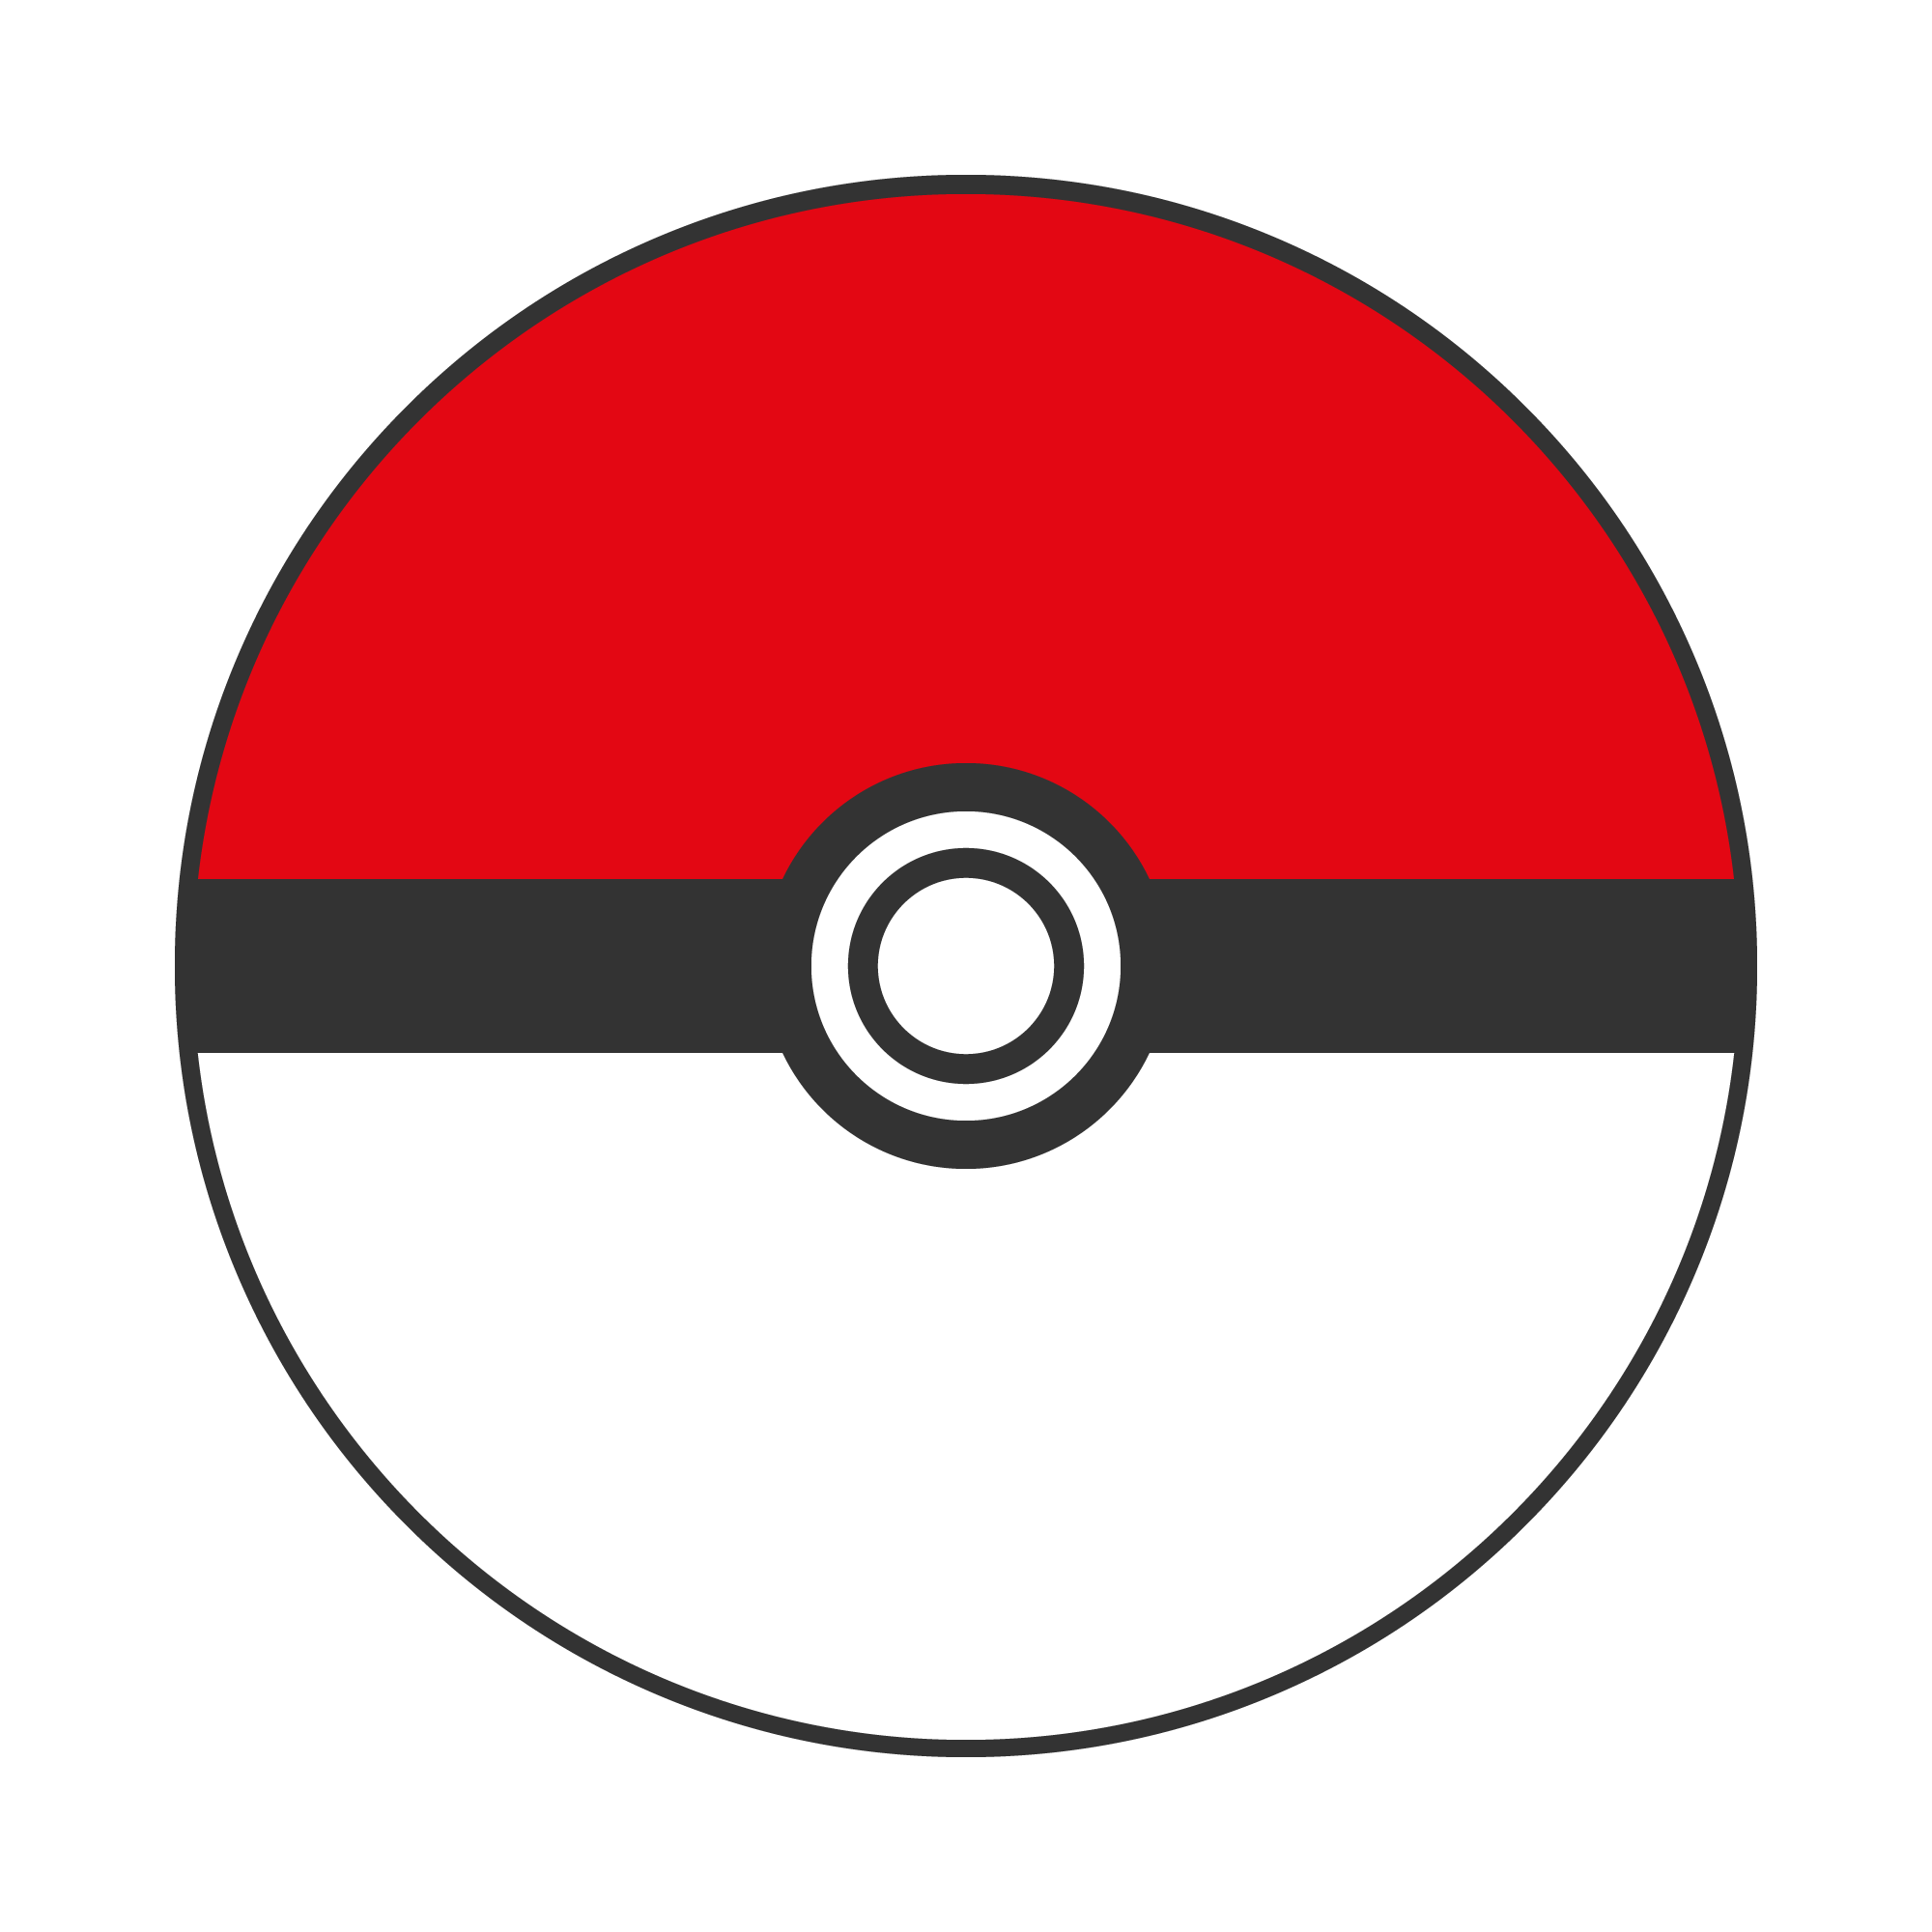 Dynamite image intended for pokeball printable